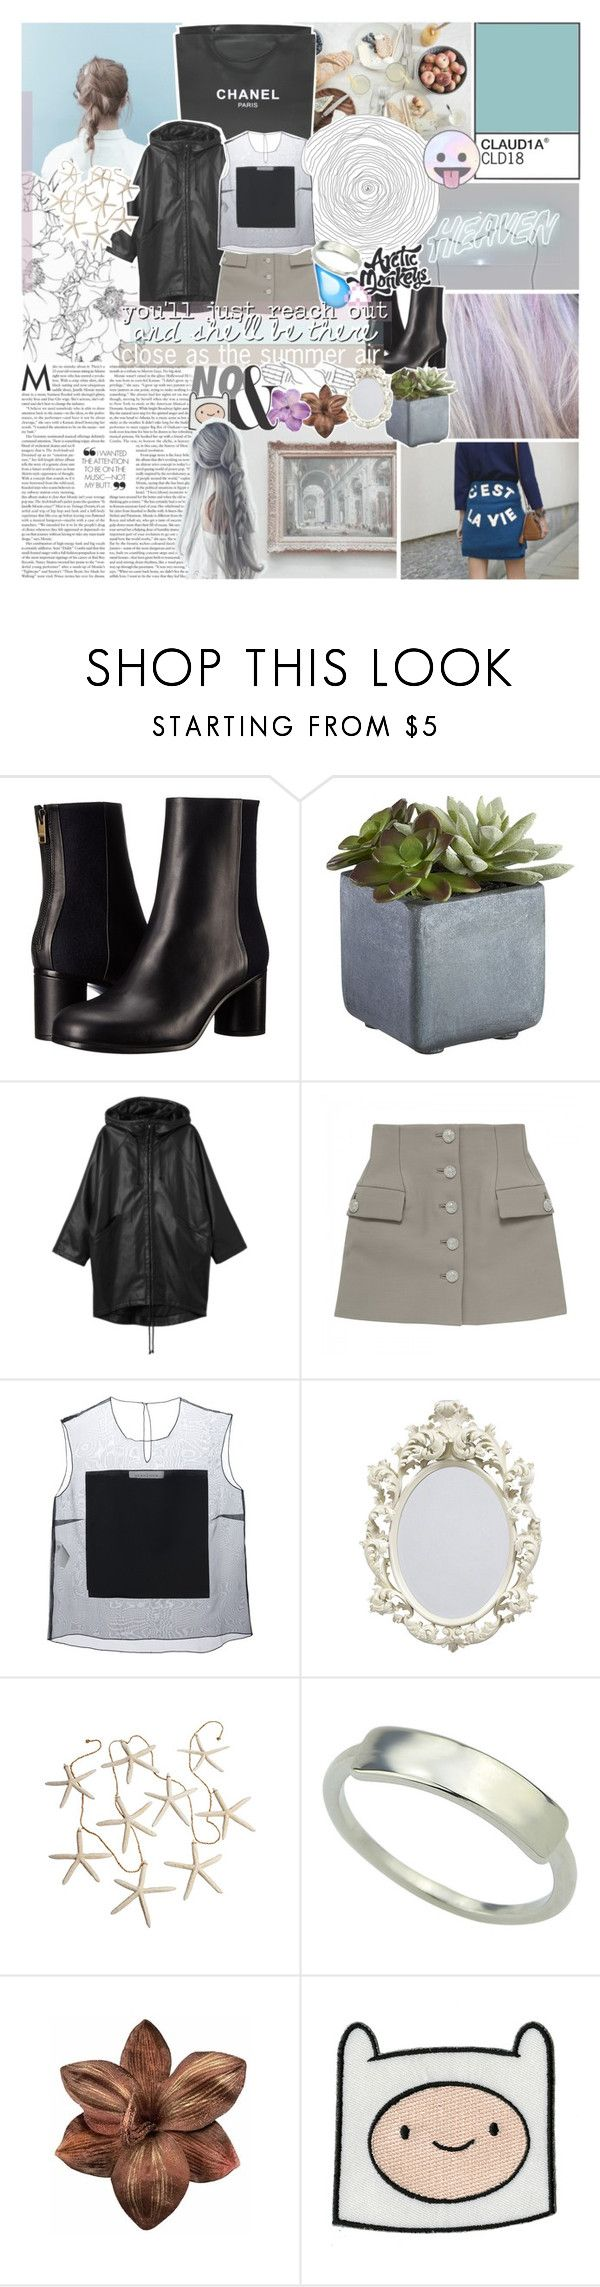 """""""stuck in a dream"""" by kristen-gregory-sexy-sports-babe ❤ liked on Polyvore featuring Chanel, Paul Smith, Crate and Barrel, Monki, Gianluca Capannolo and Clips"""